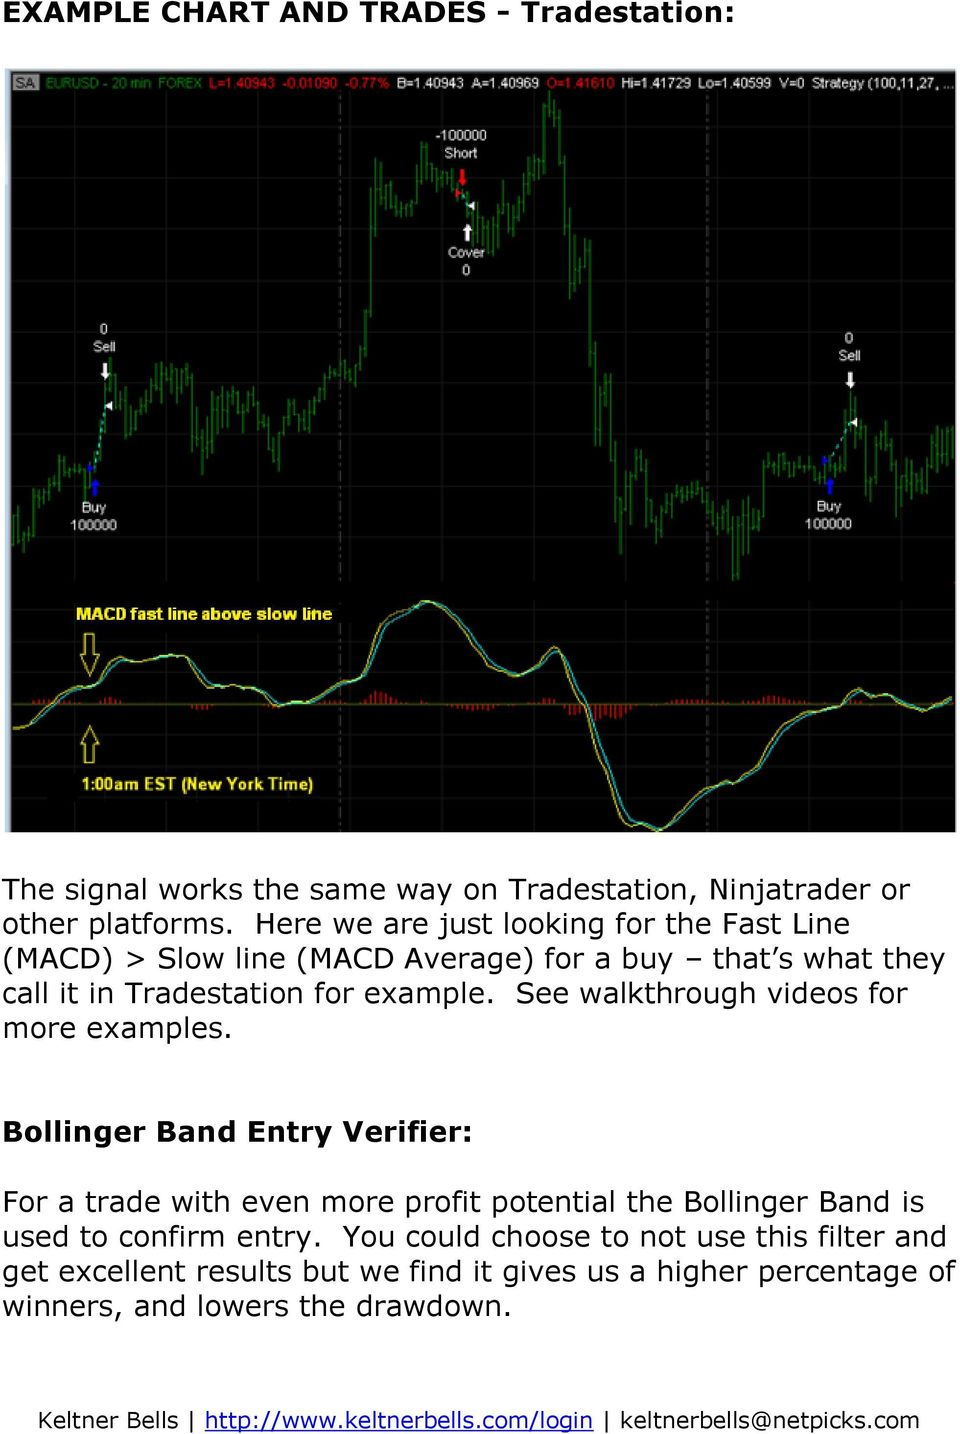 Keltner Bells Day Trading Strategy - PDF